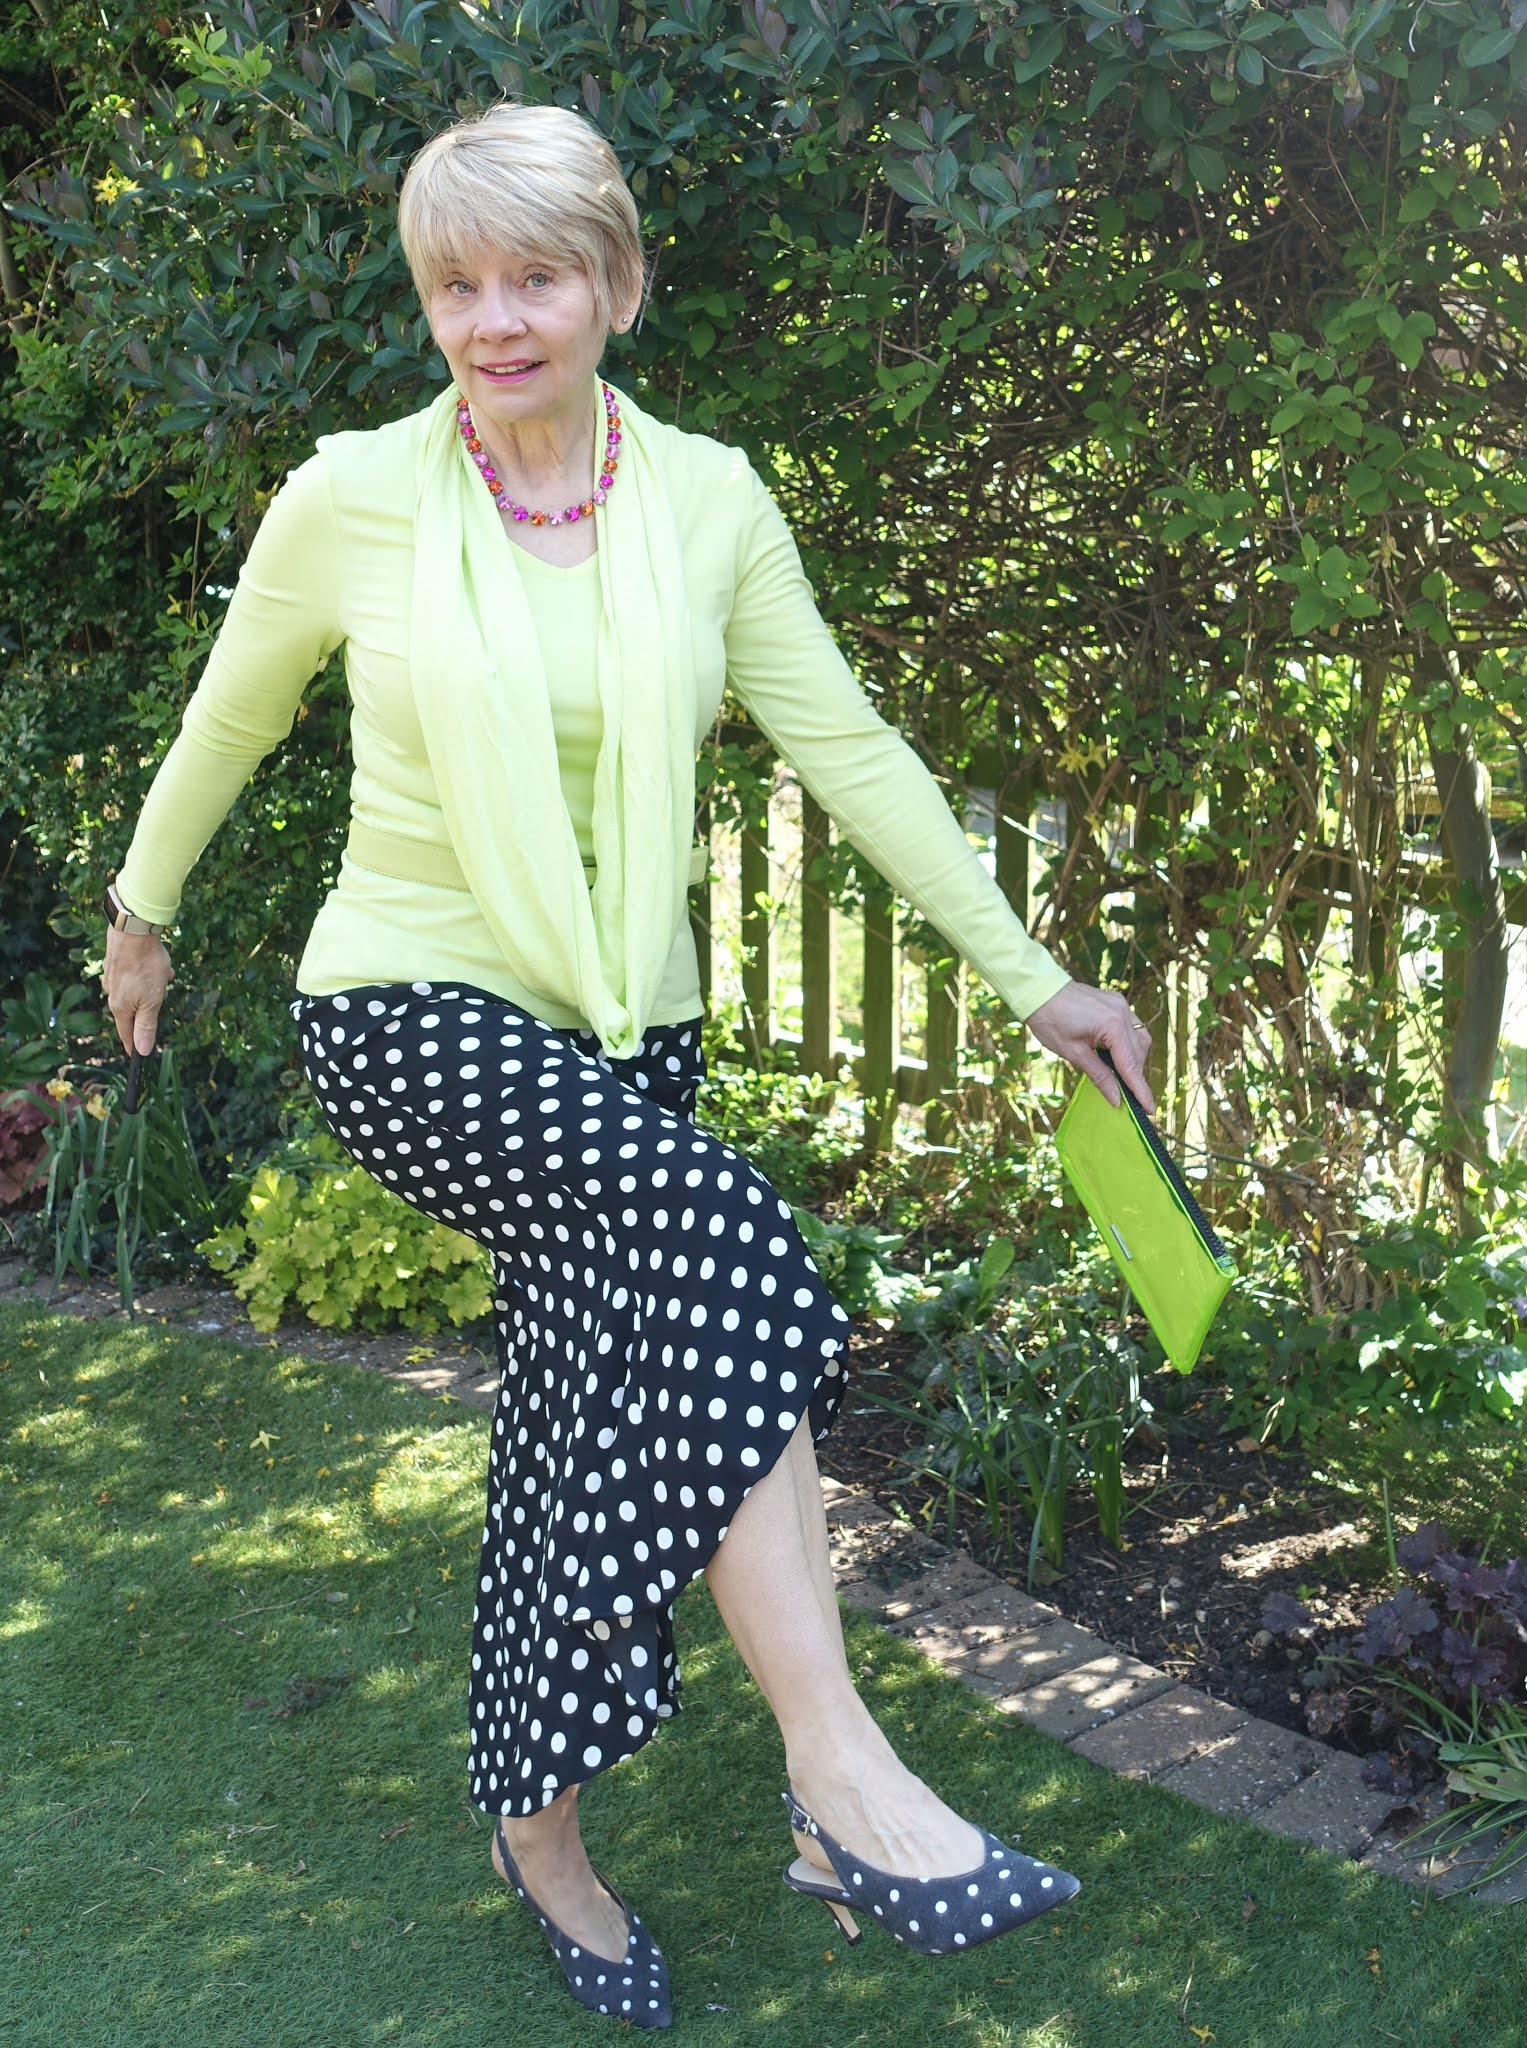 Gail Hanlon from Is This Mutton in acid yellow and black polka dot trousers and shoes